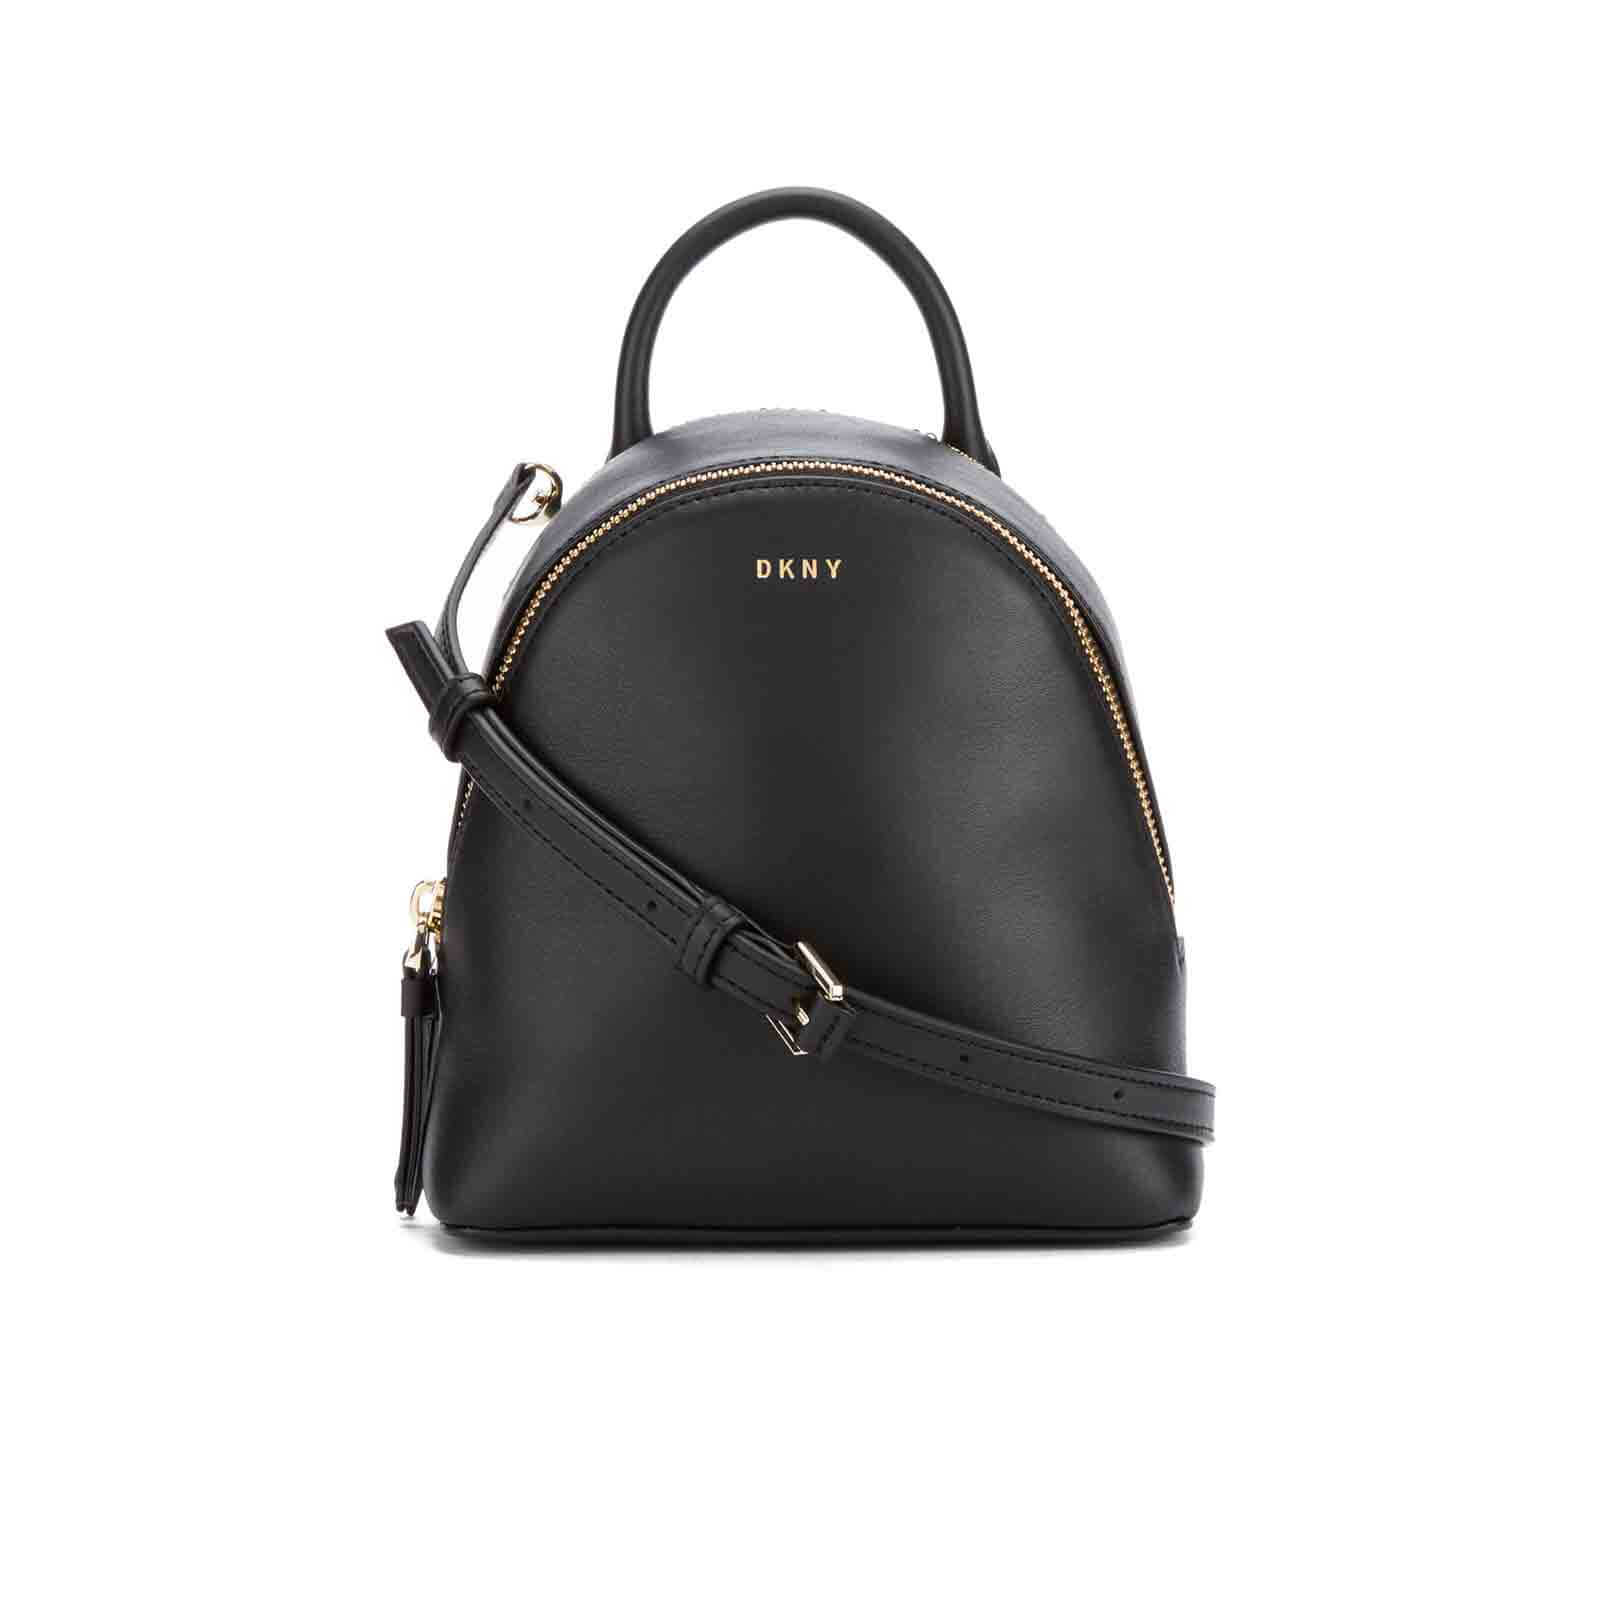 23fae2620f DKNY Women s Greenwich Mini Backpack - Black - Free UK Delivery over £50